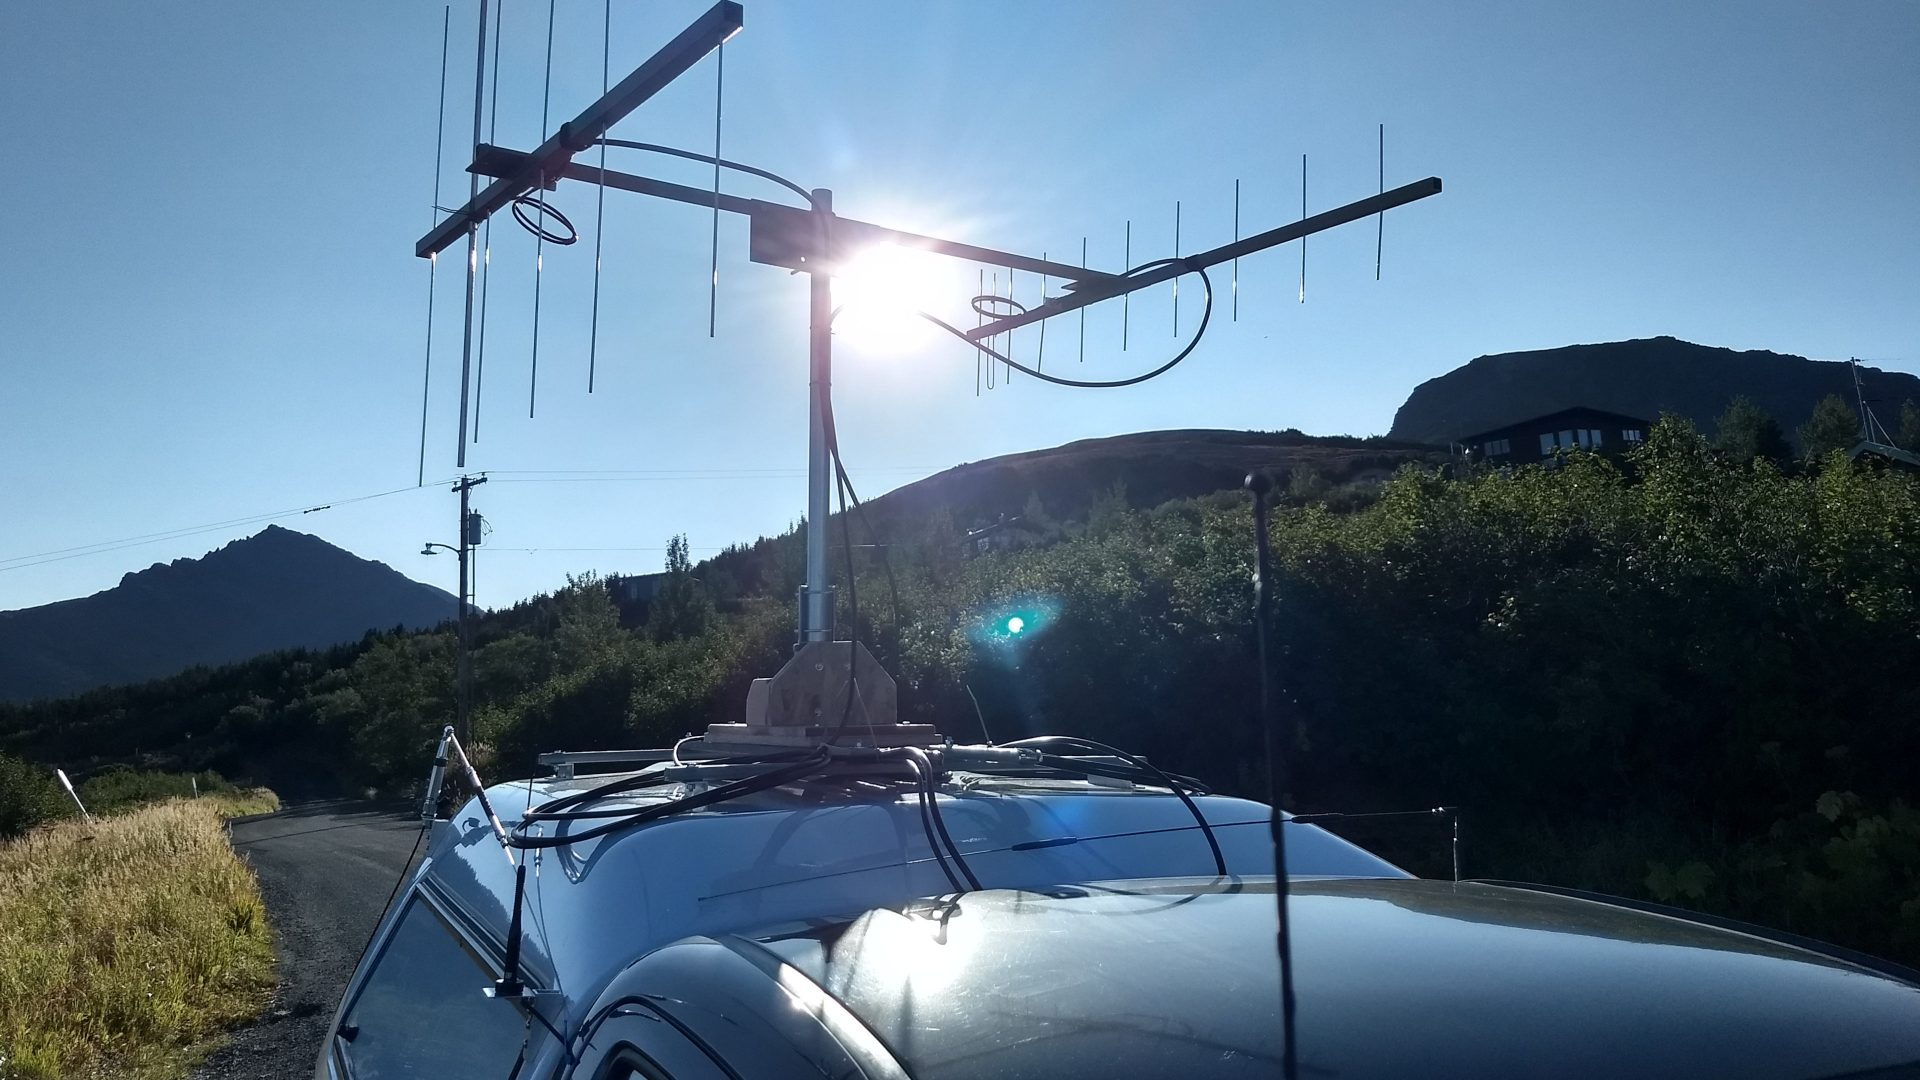 VHF rover antennas on a mobile vehicle